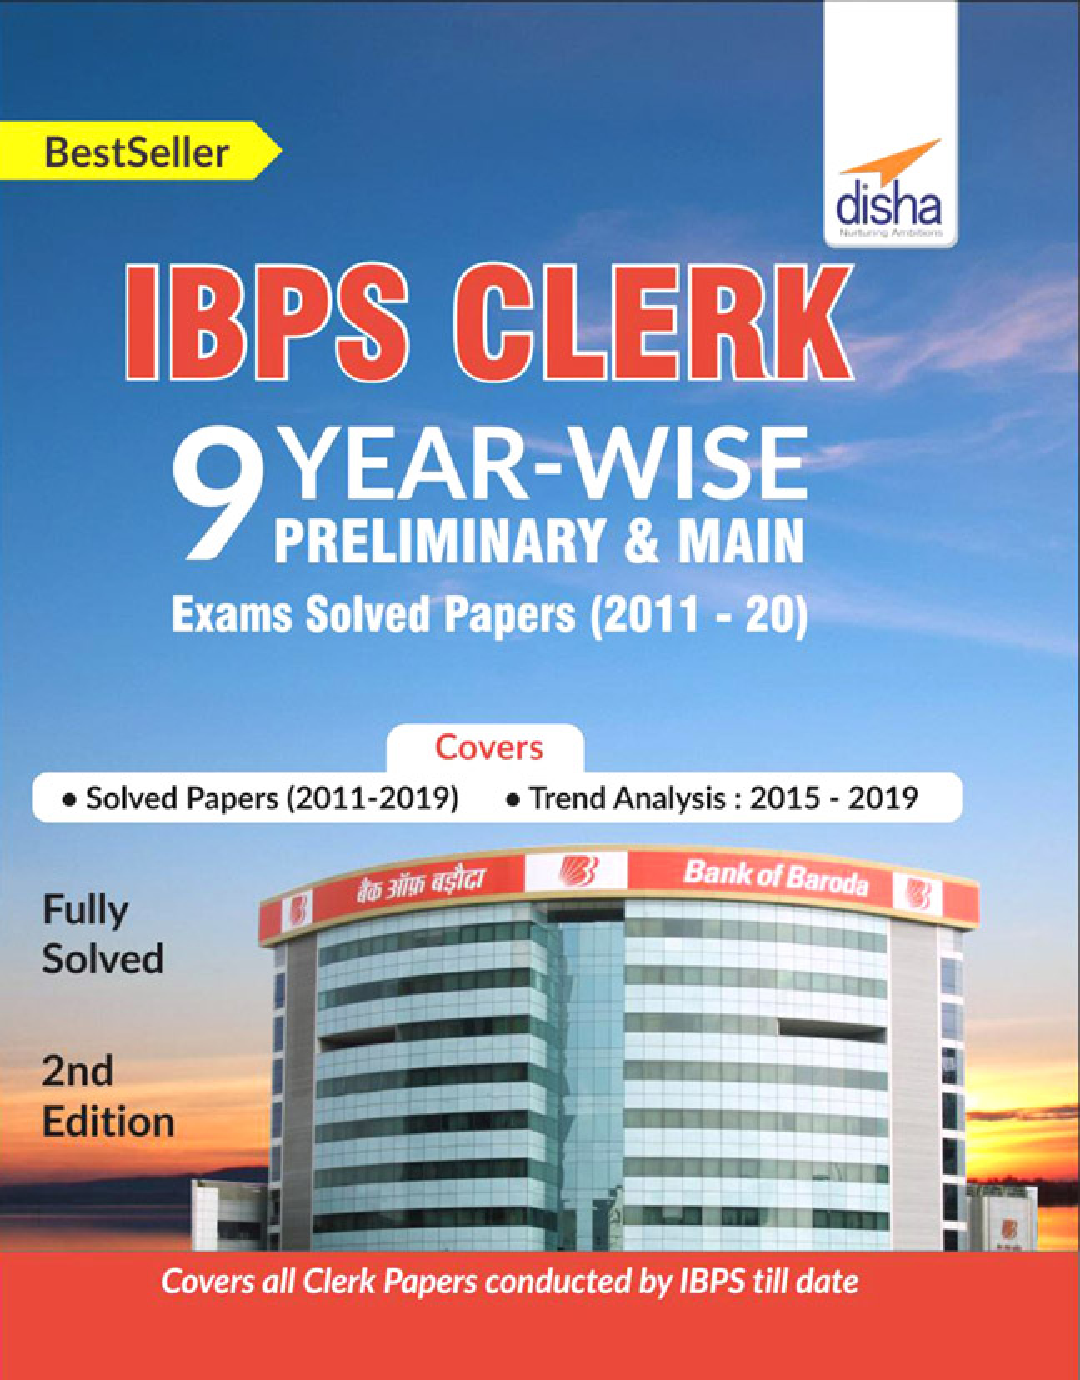 IBPS Clerk 9 Year-Wise Preliminary & Main Exams Solved Papers (2011-20) - Page 1